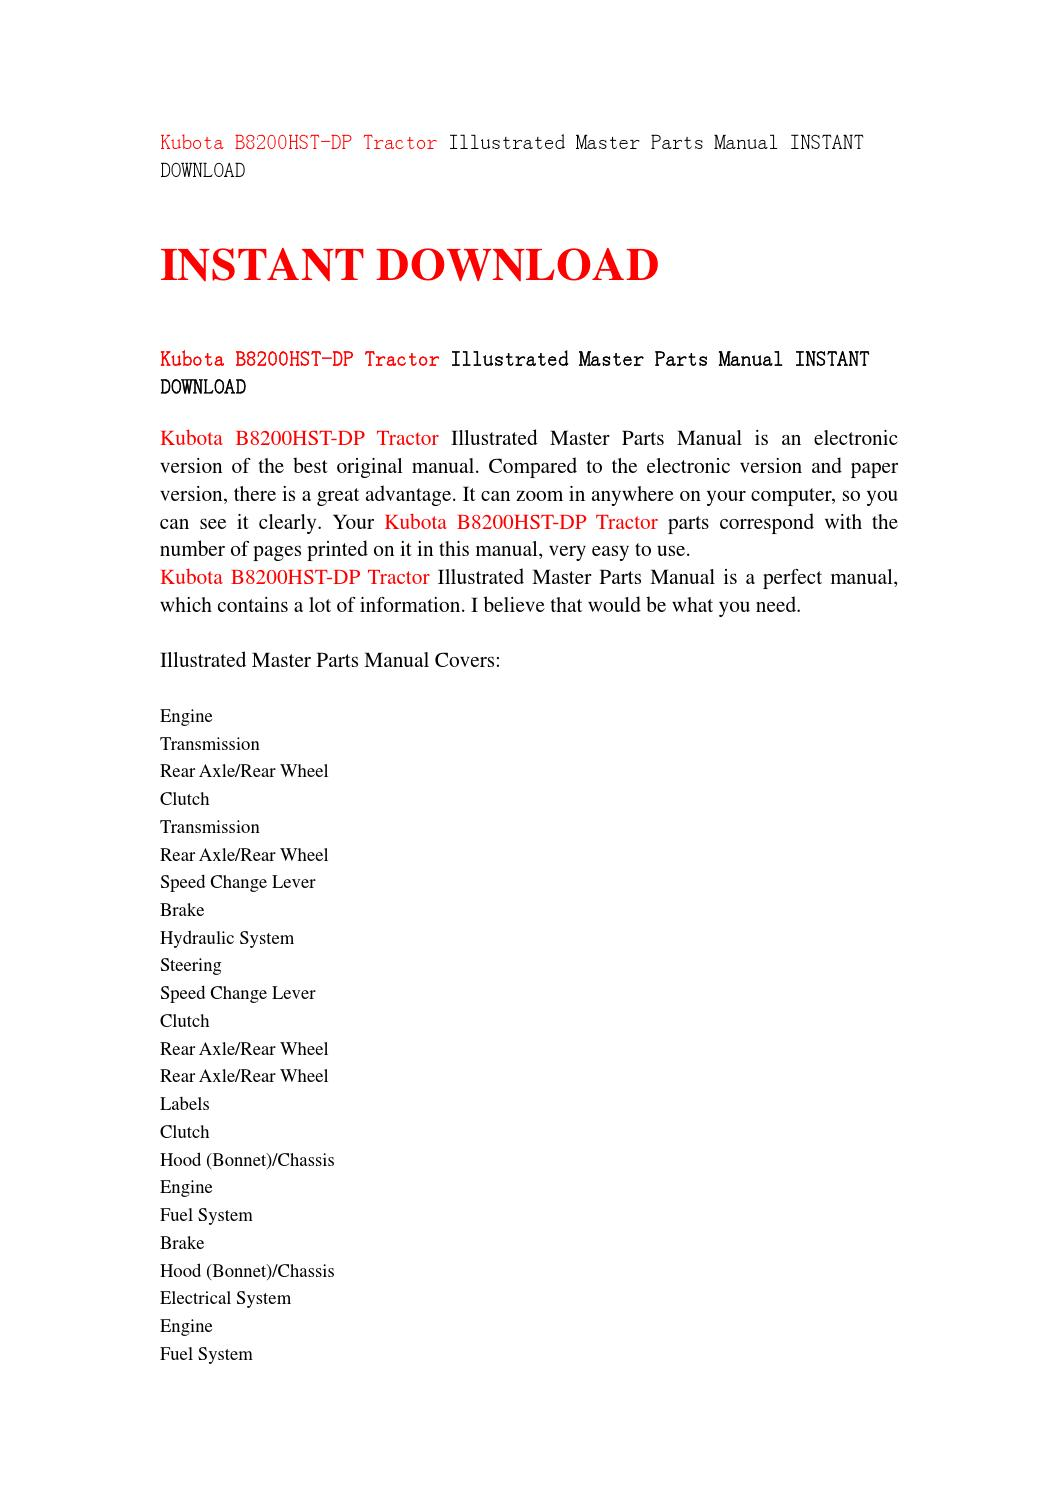 Kubota b8200hst dp tractor illustrated master parts manual instant download  by ysgebfh - issuu